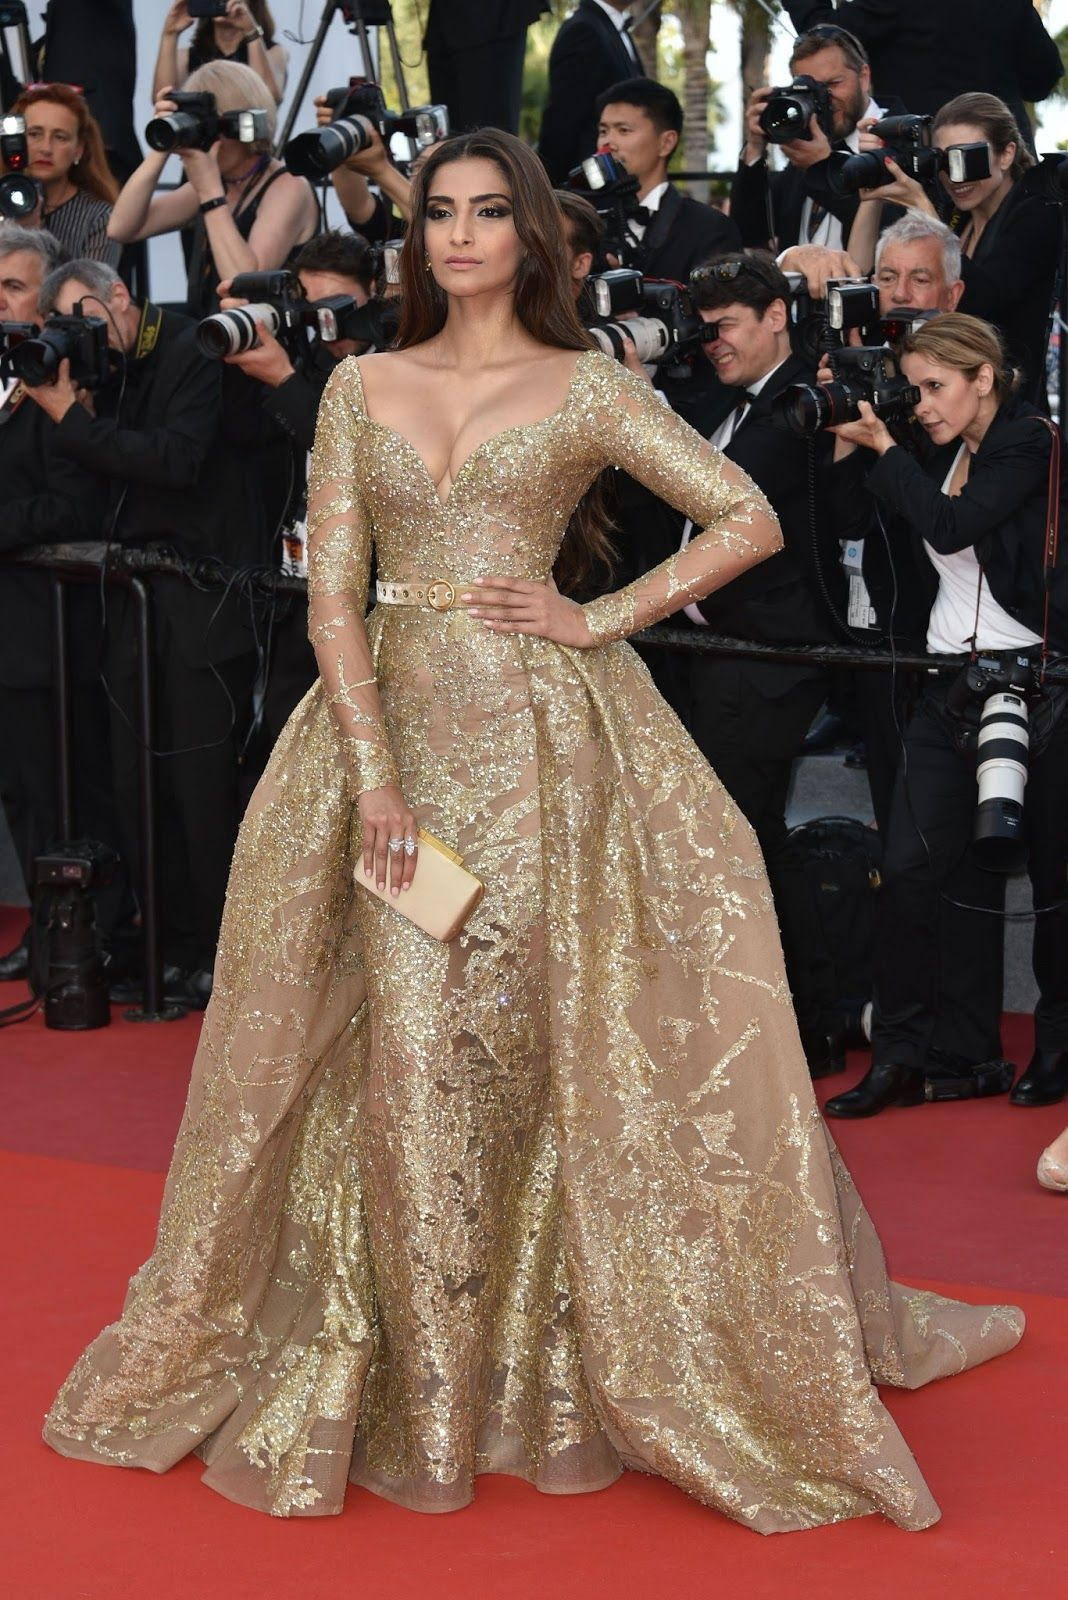 Sonam kapoor sexiest cleavage show in elie saab couture at cannes